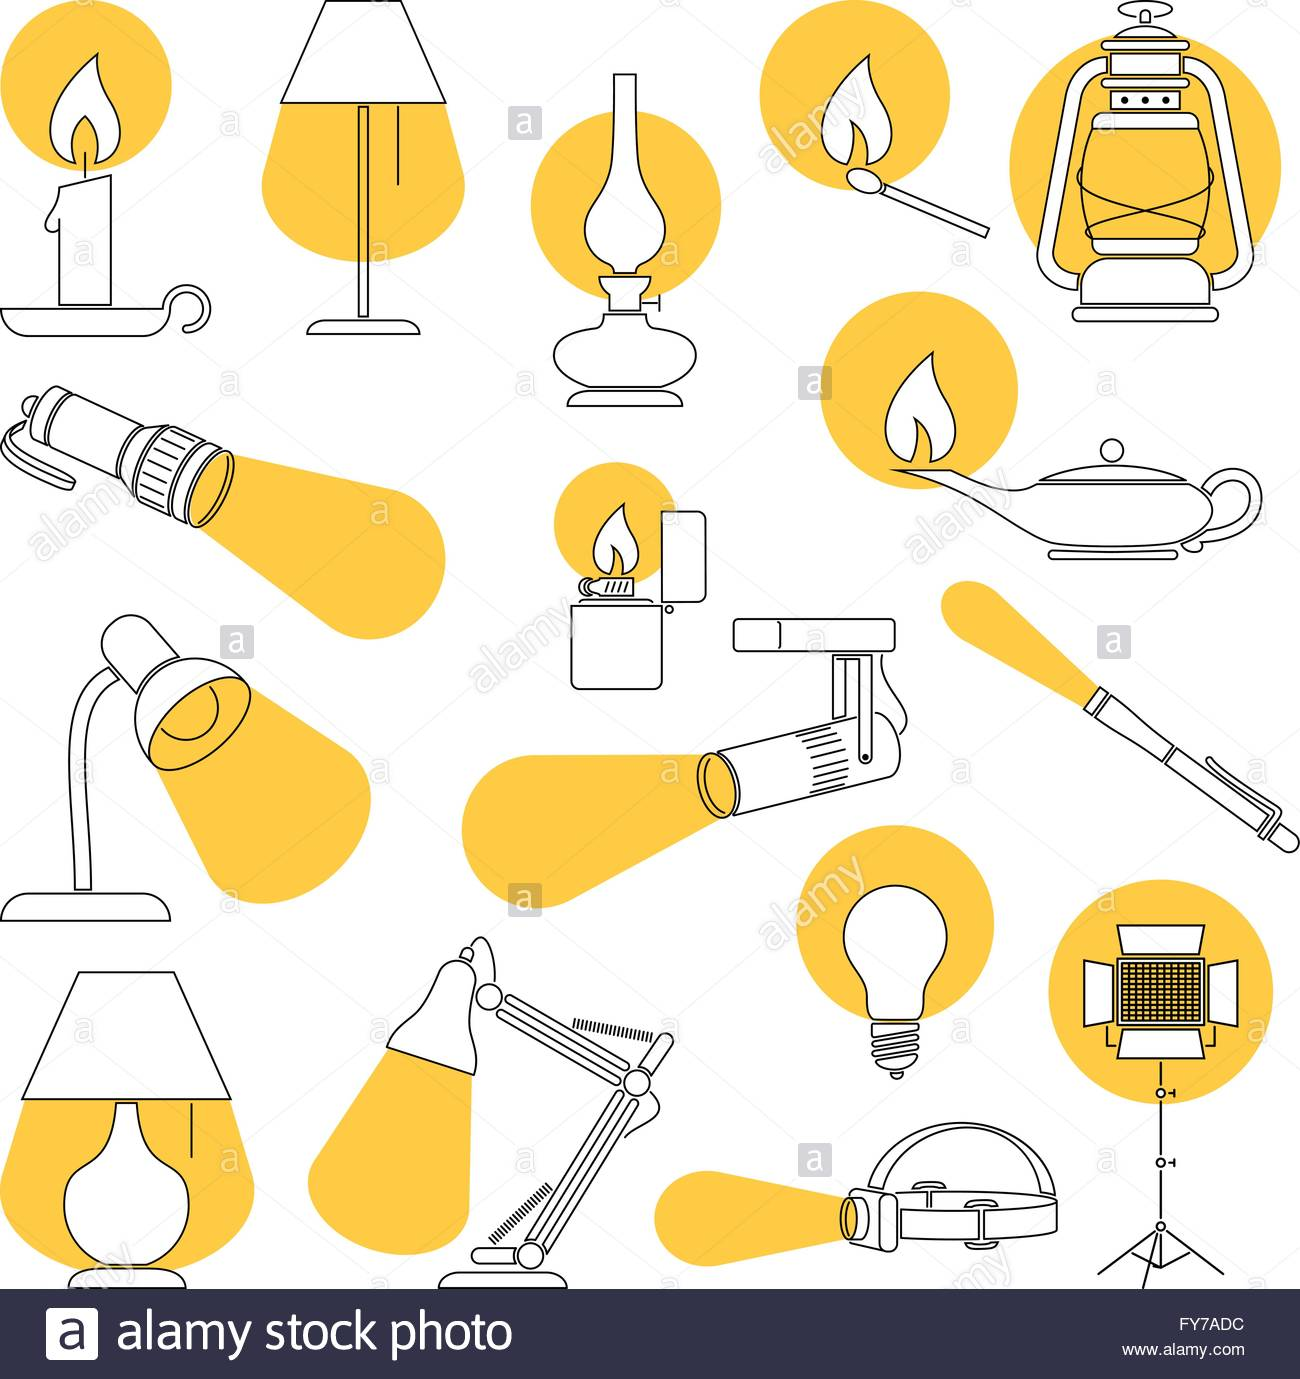 Lamp Lights. Line Drawing of a Set of Lamp and Lighting Equipments. - Stock Image